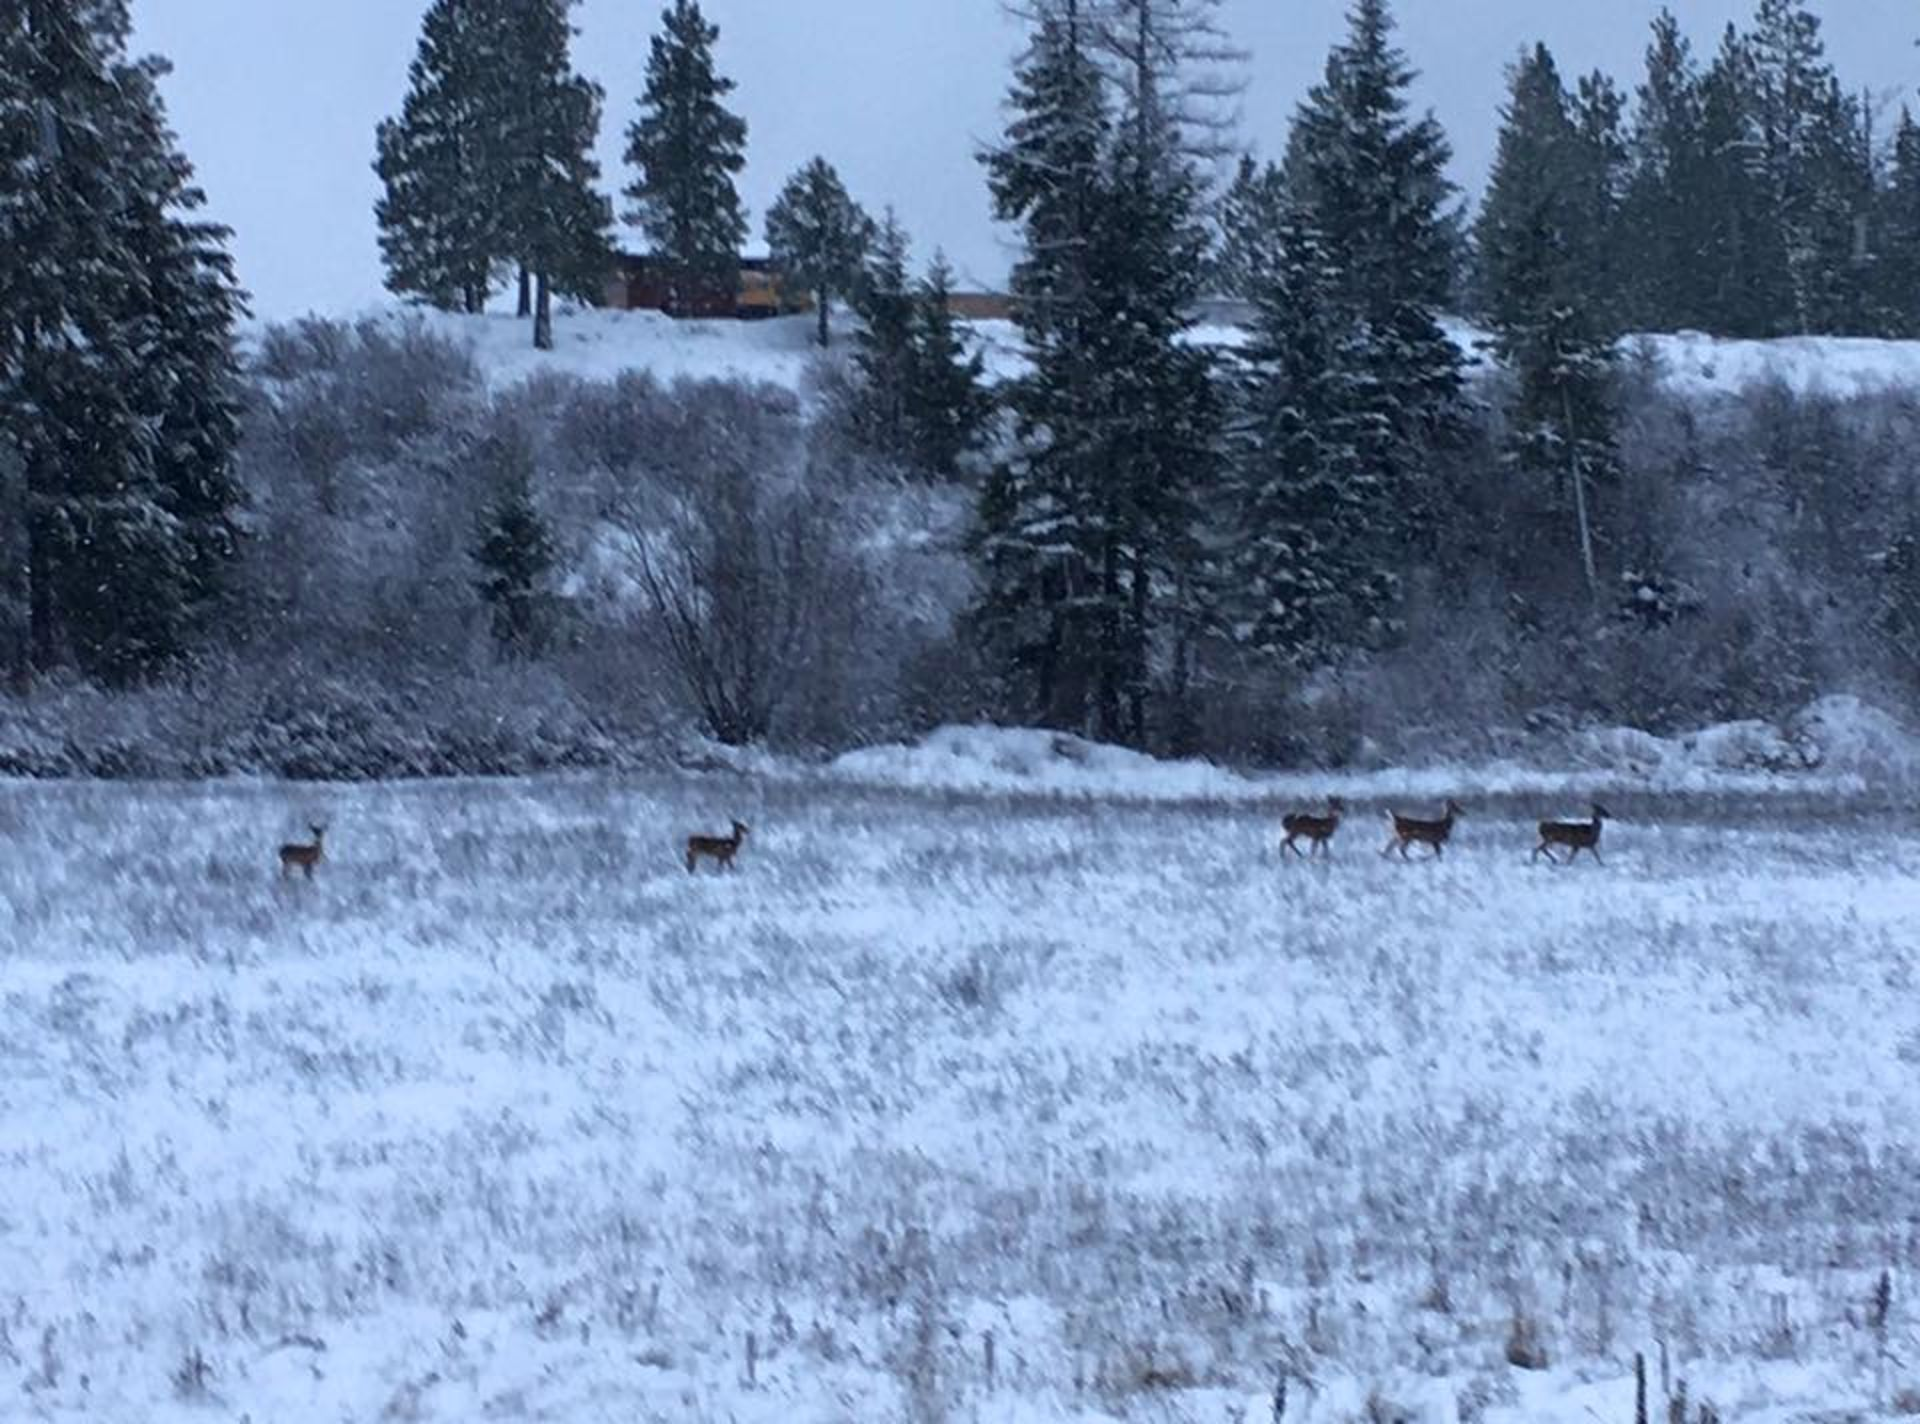 Oh, deer. In spite of snow, officials say DON'T FEED THEM in town!